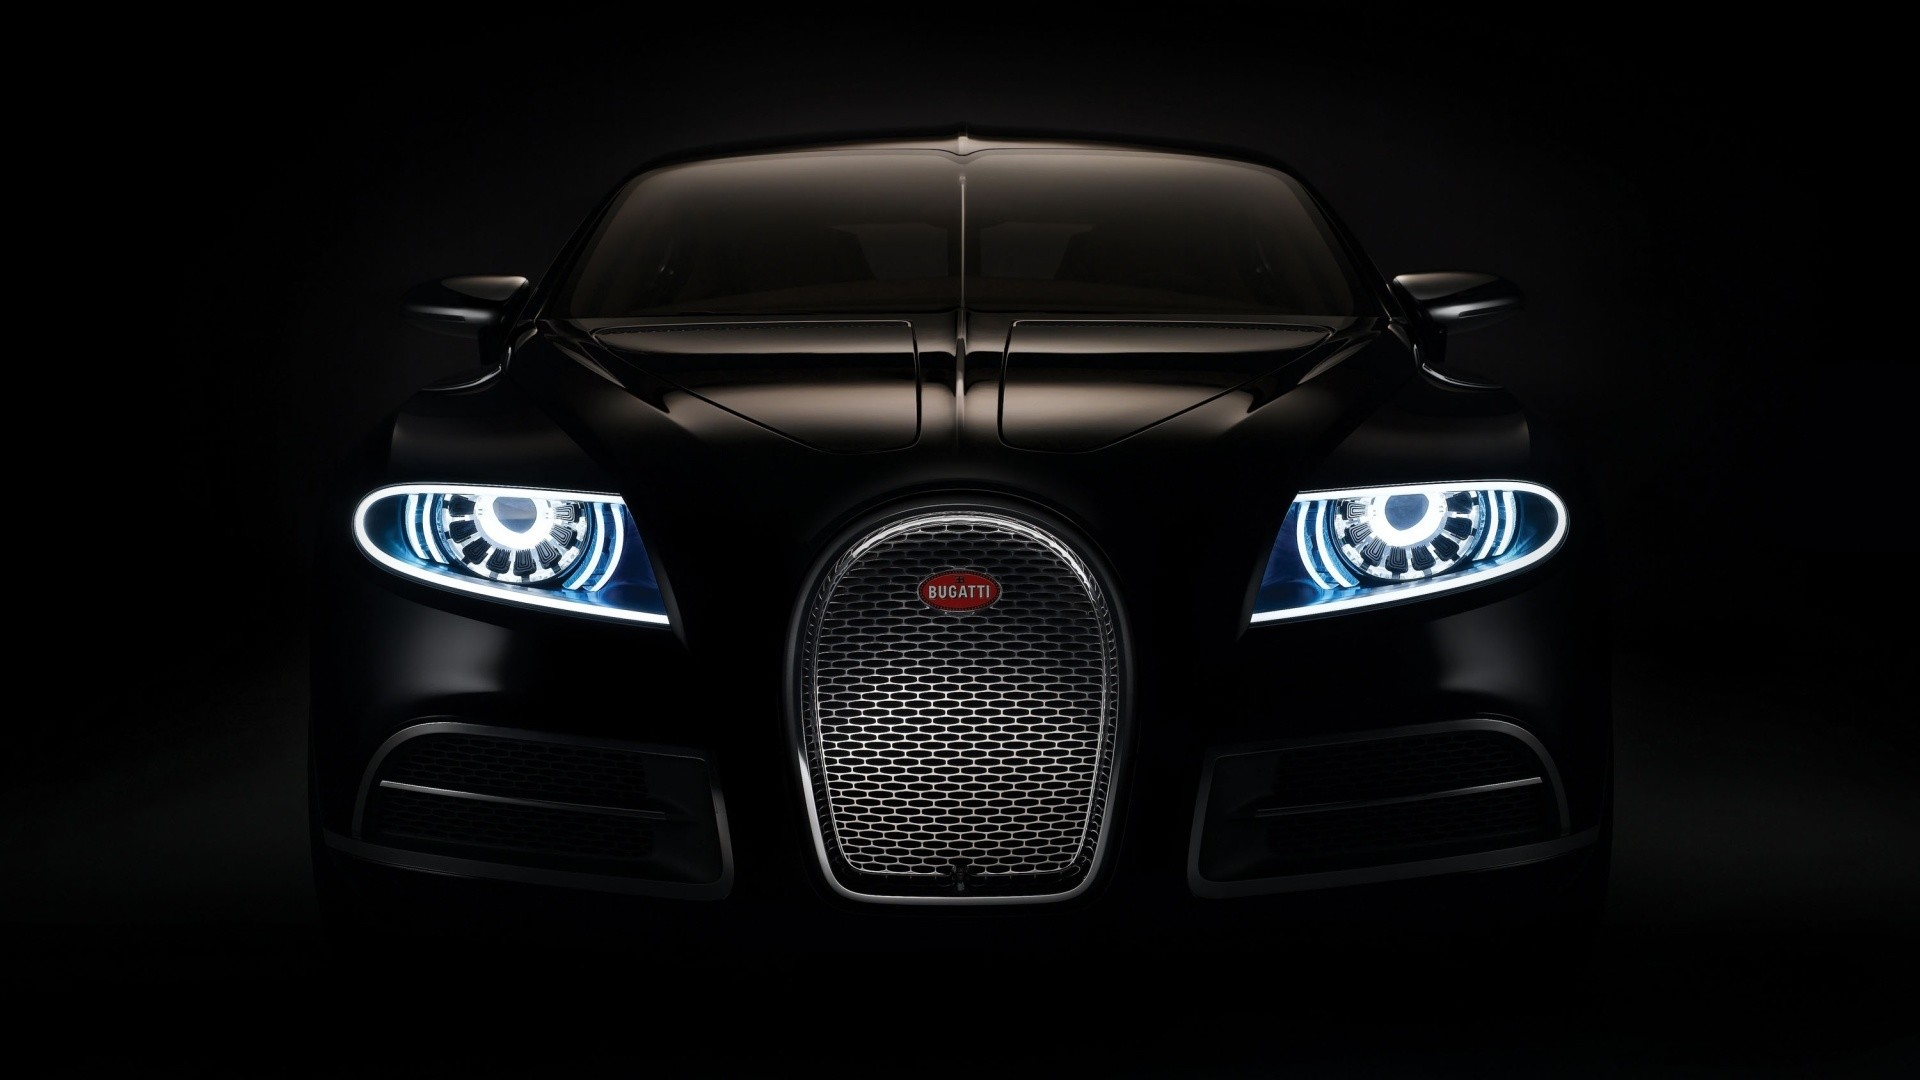 Cool Car Background Wallpapers 76 Background Pictures